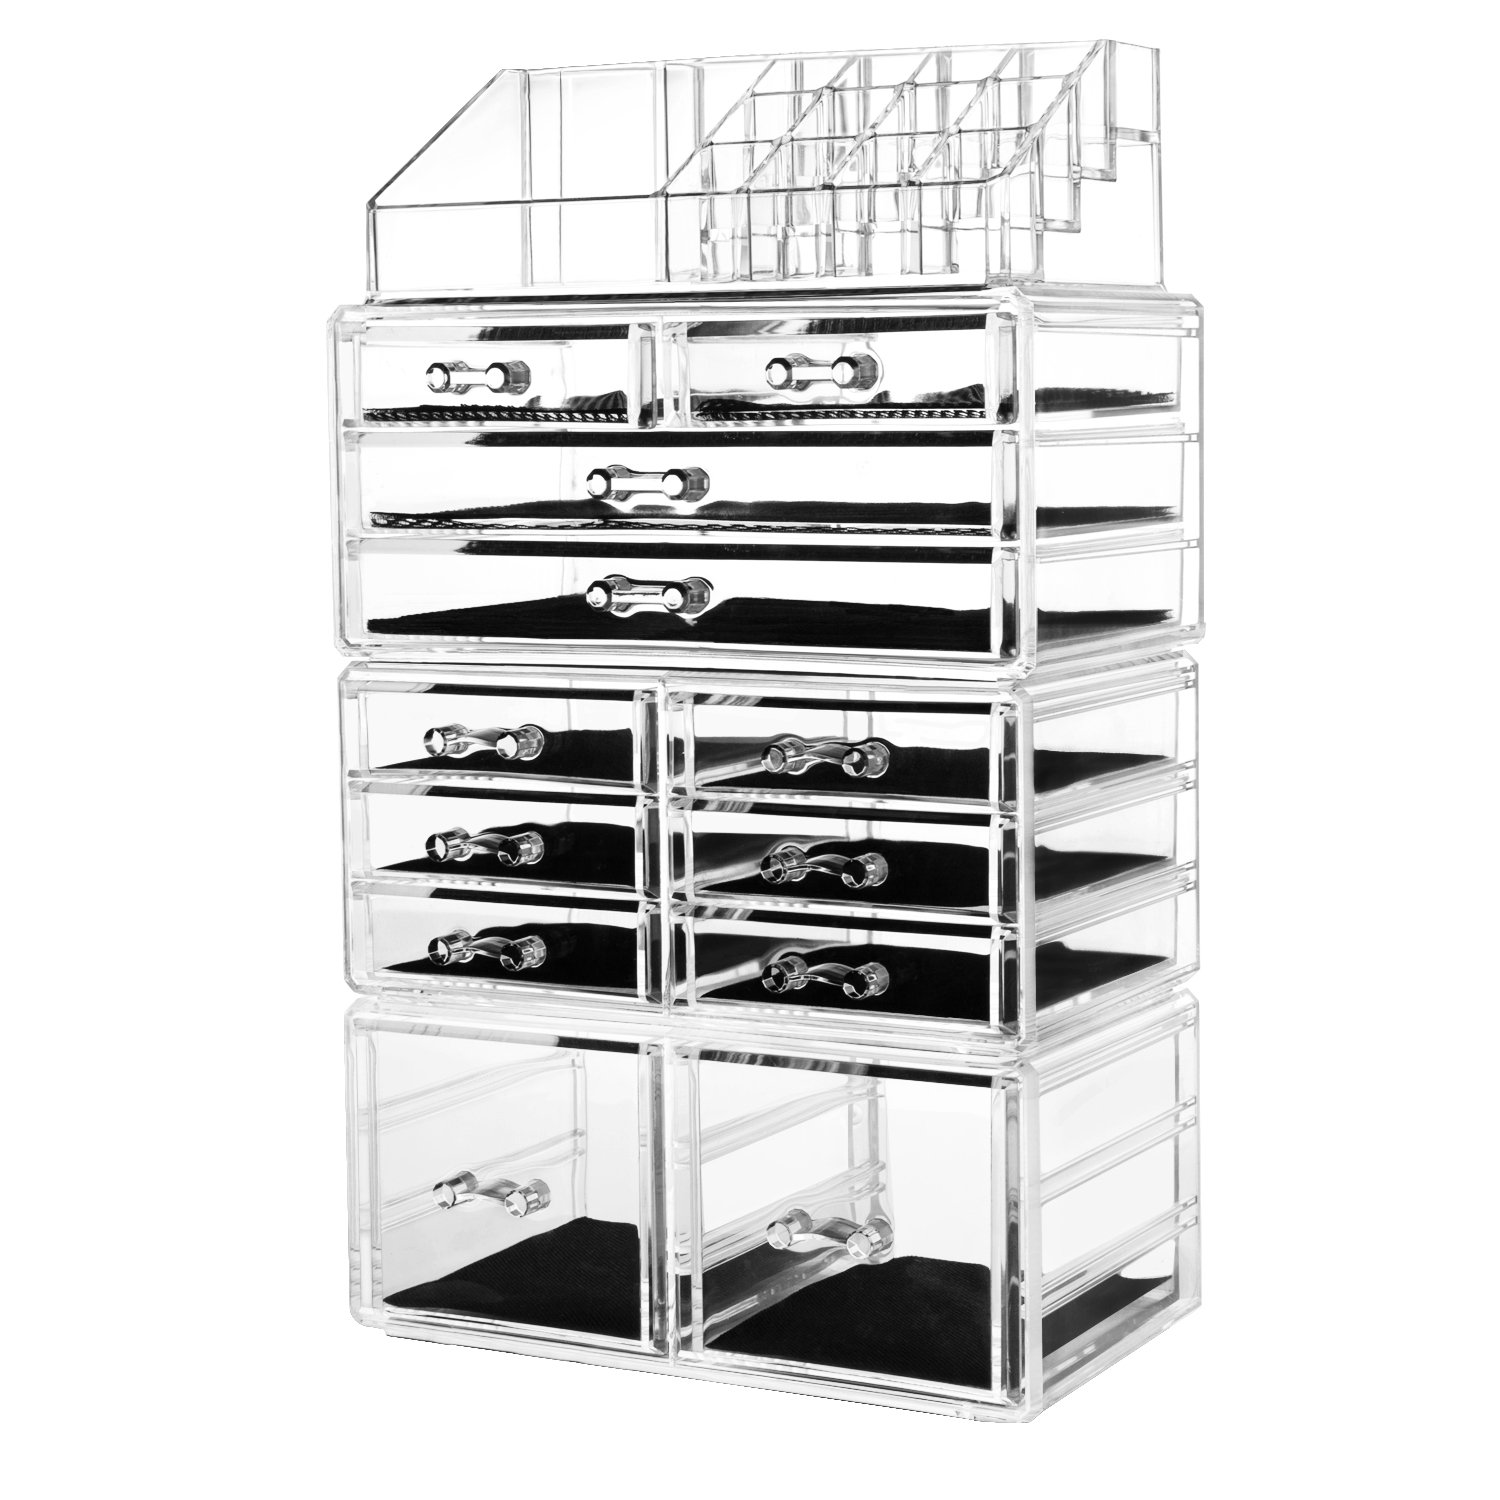 HBlife Makeup Organizer Acrylic Cosmetic Storage Drawers and Jewelry Display Box with 12 Drawers, 9.5'' x 5.4'' x 15.8'', 4 Piece